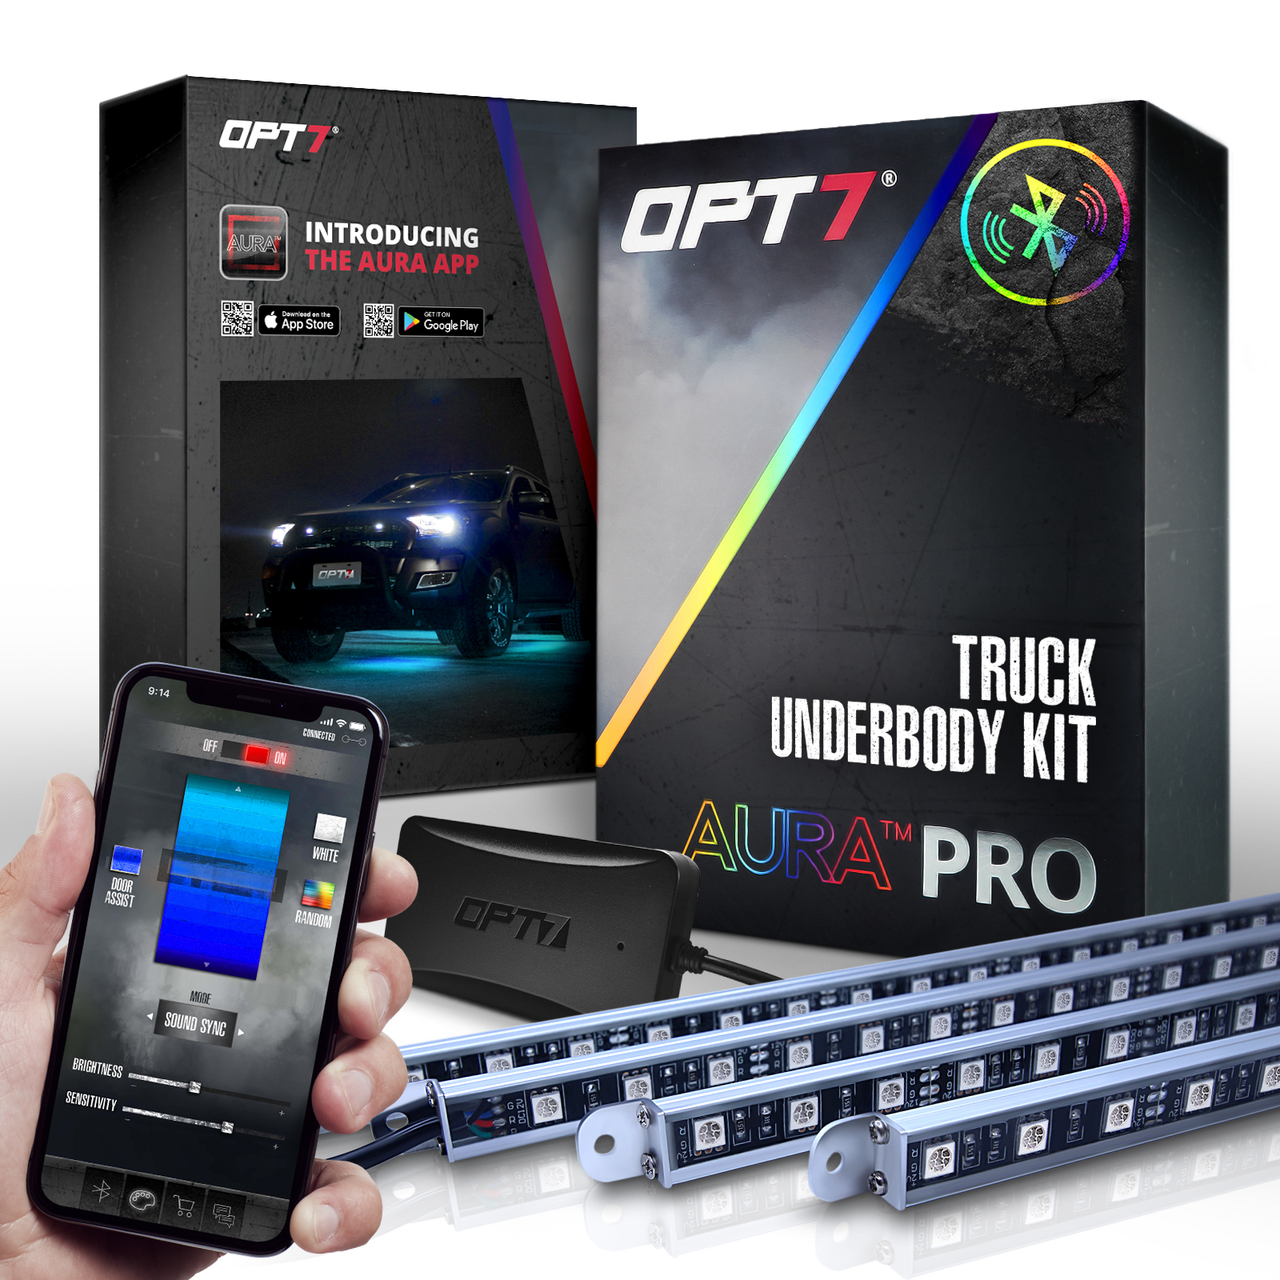 AURA PRO Truck LED Aluminum Underglow Lighting Kit - Bluetooth Enabled APP  Full Color Spectrum